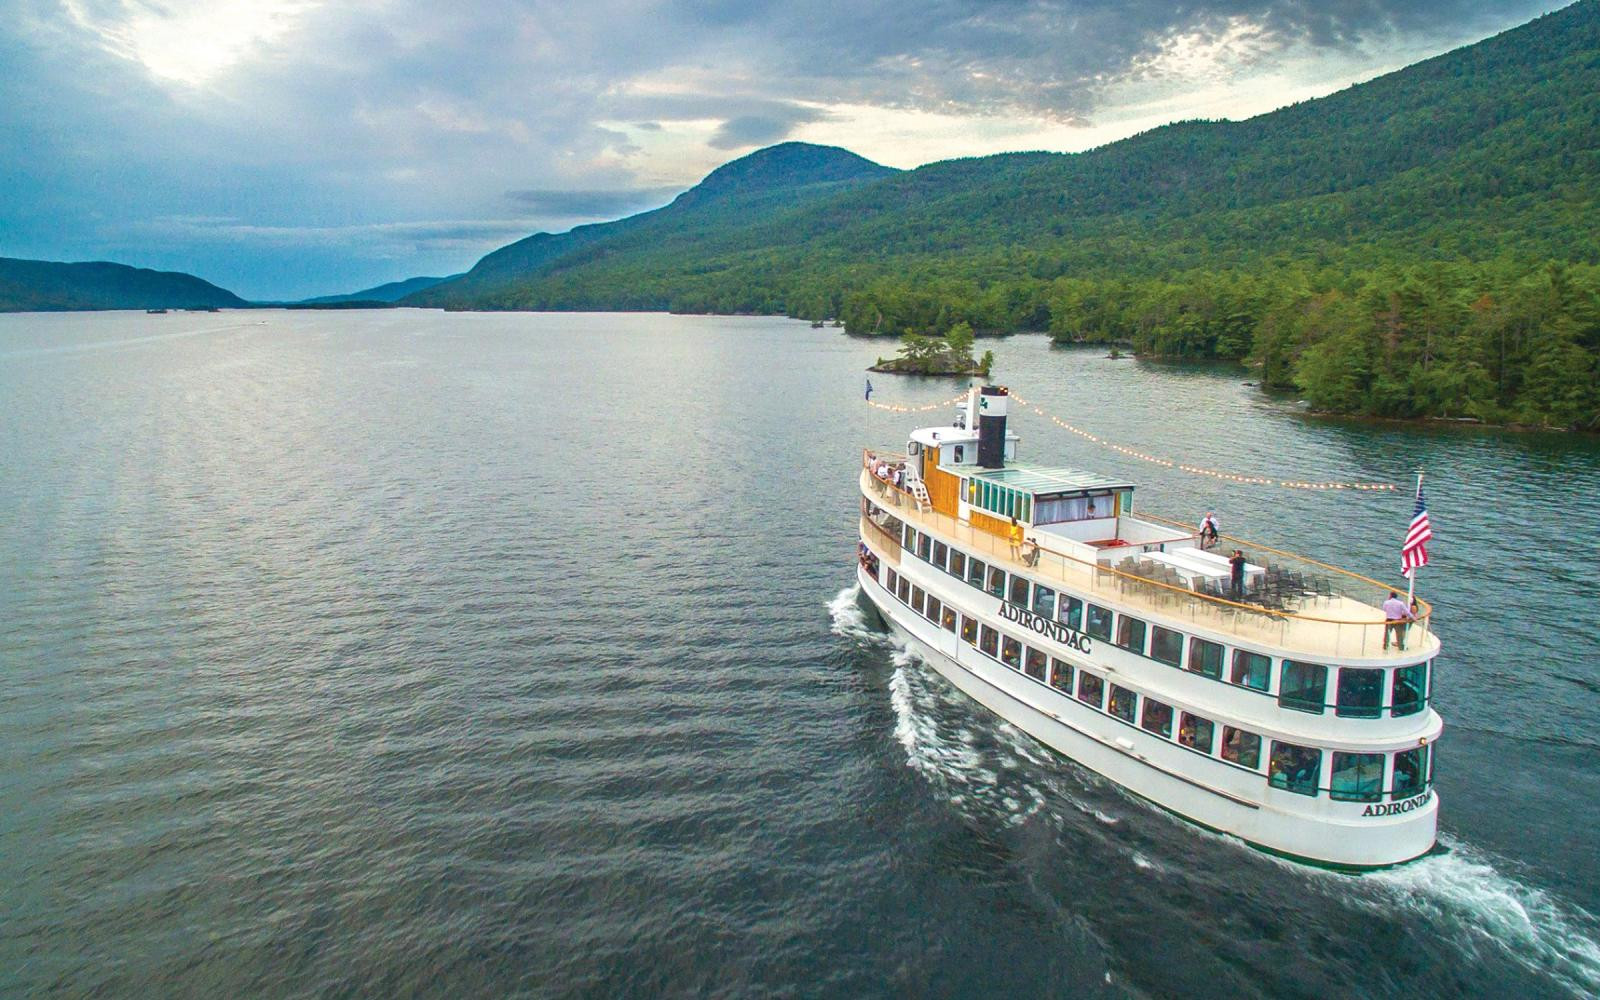 Lake George Dinner Cruise  Lake George Boat Cruises Full List of Tours Dinners